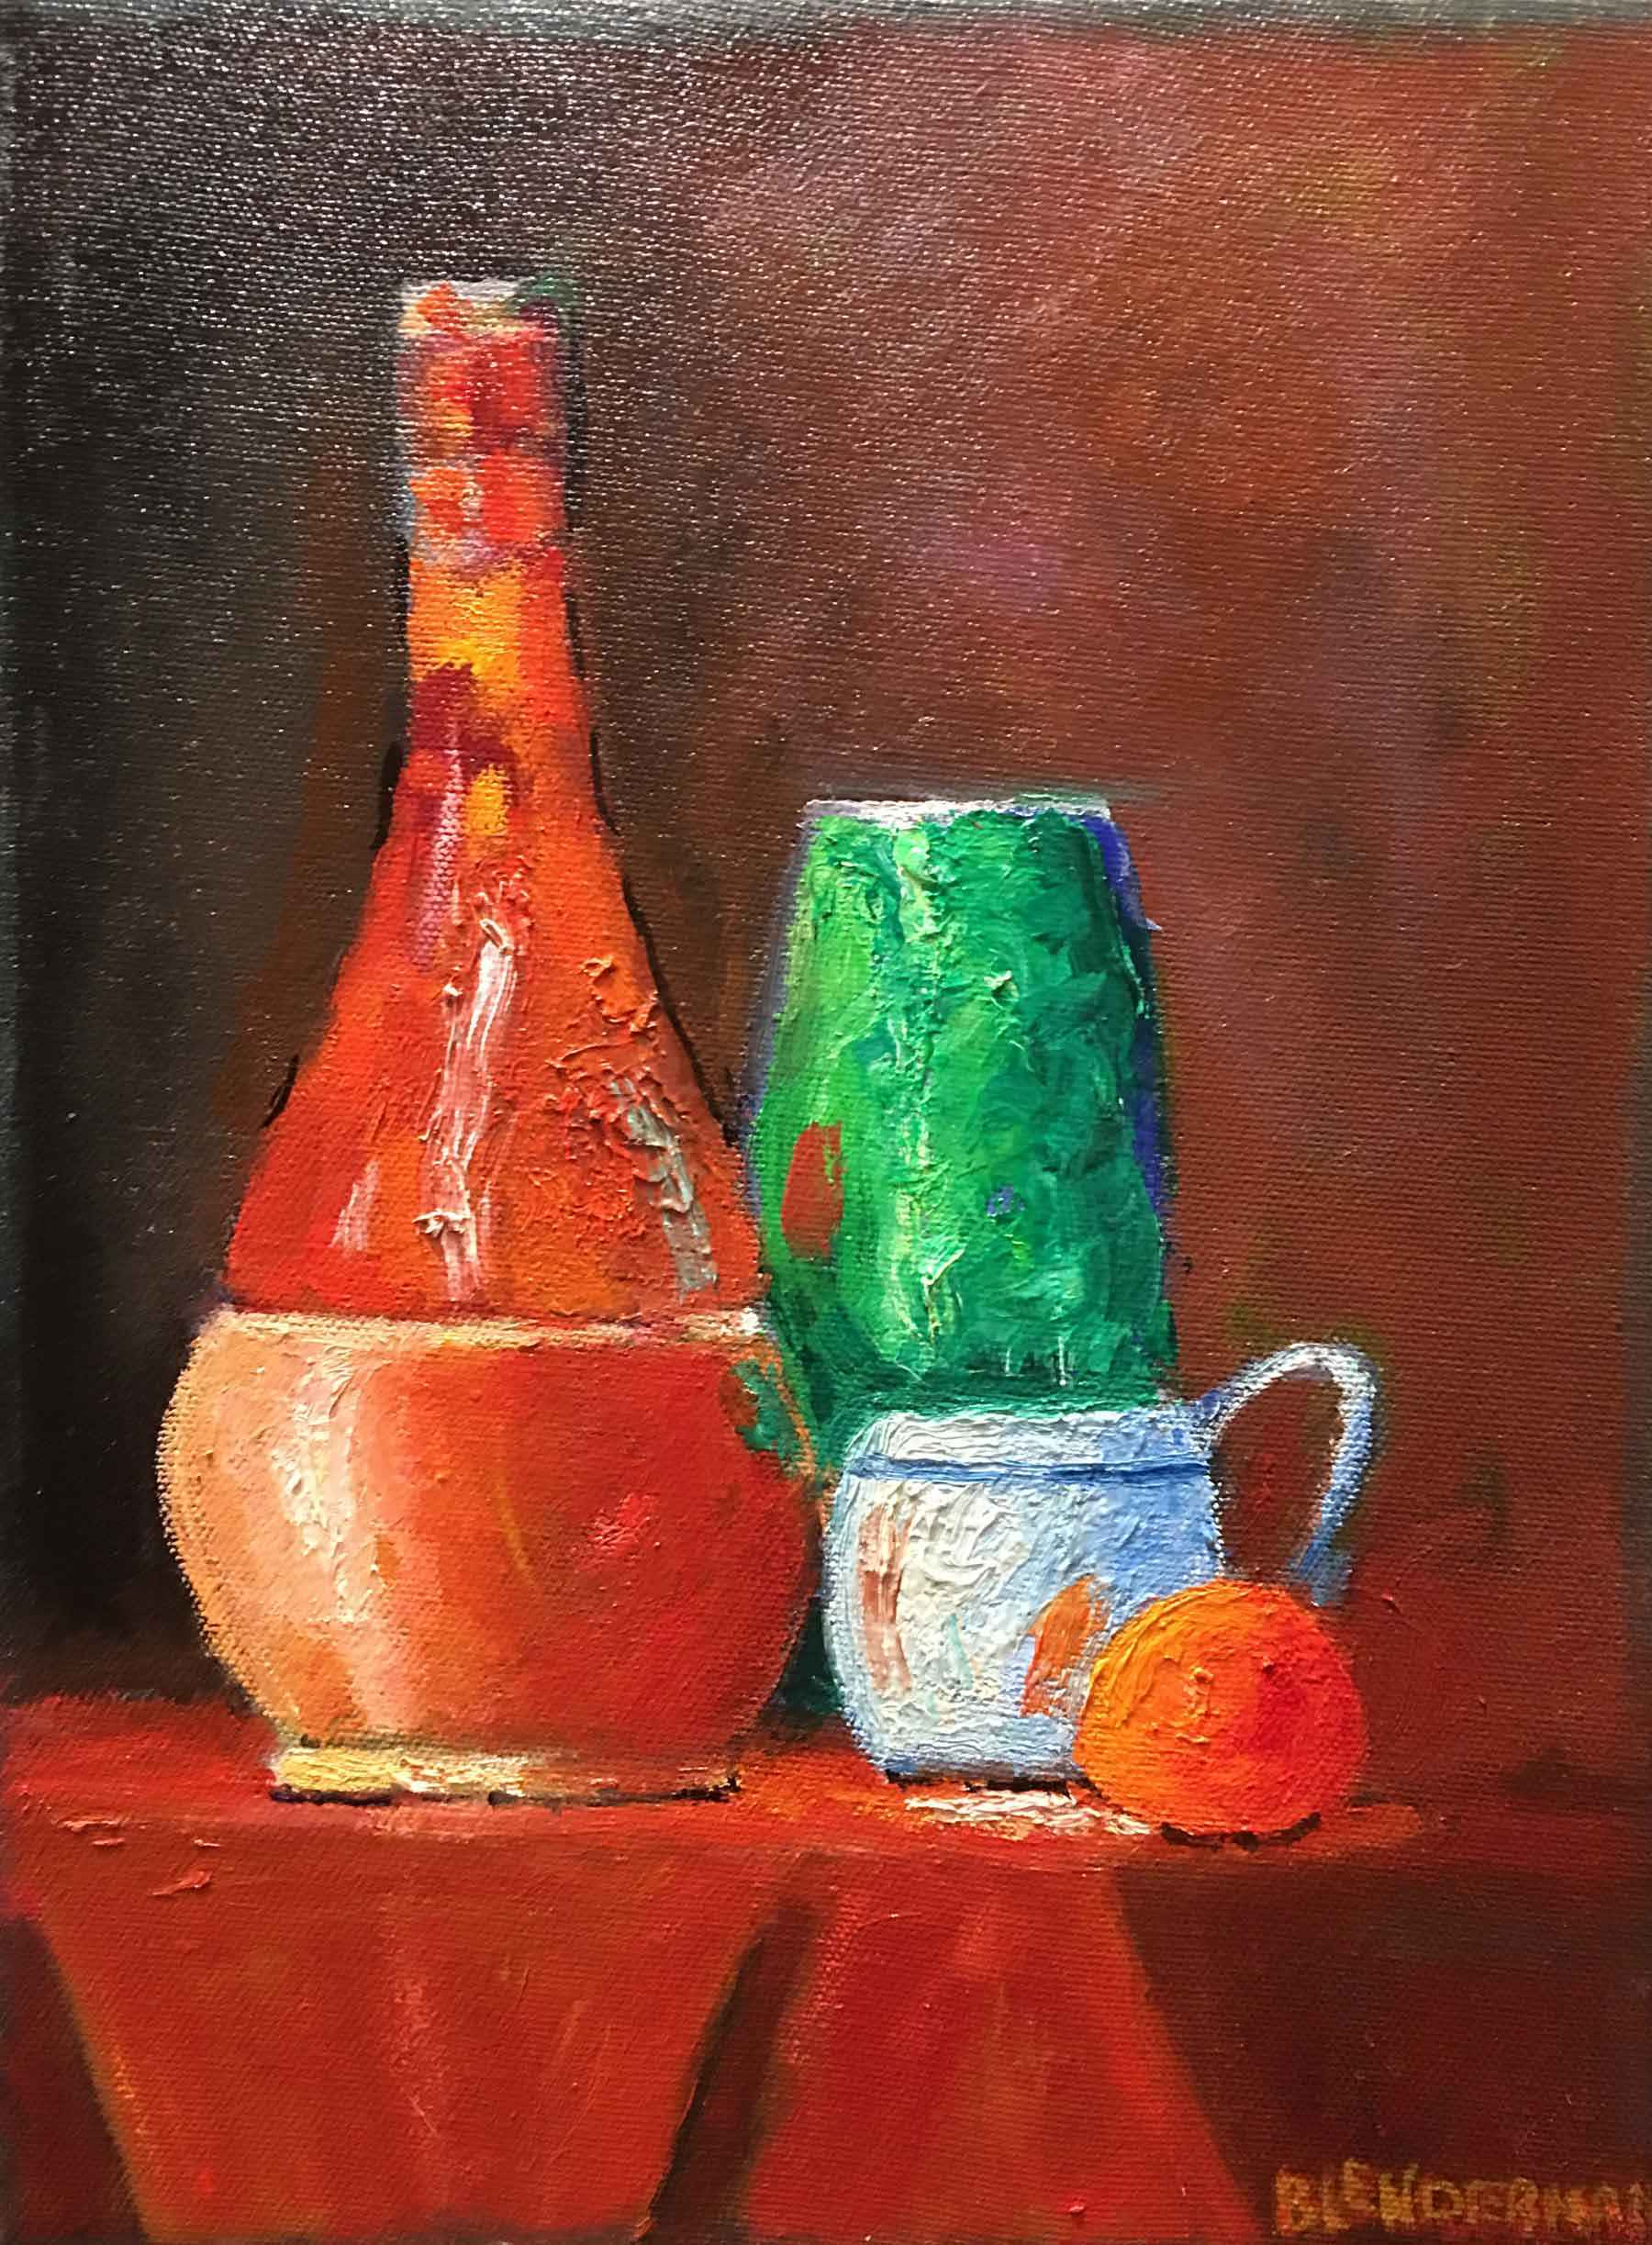 Still Life in Red & G... by  Robert Blenderman - Masterpiece Online